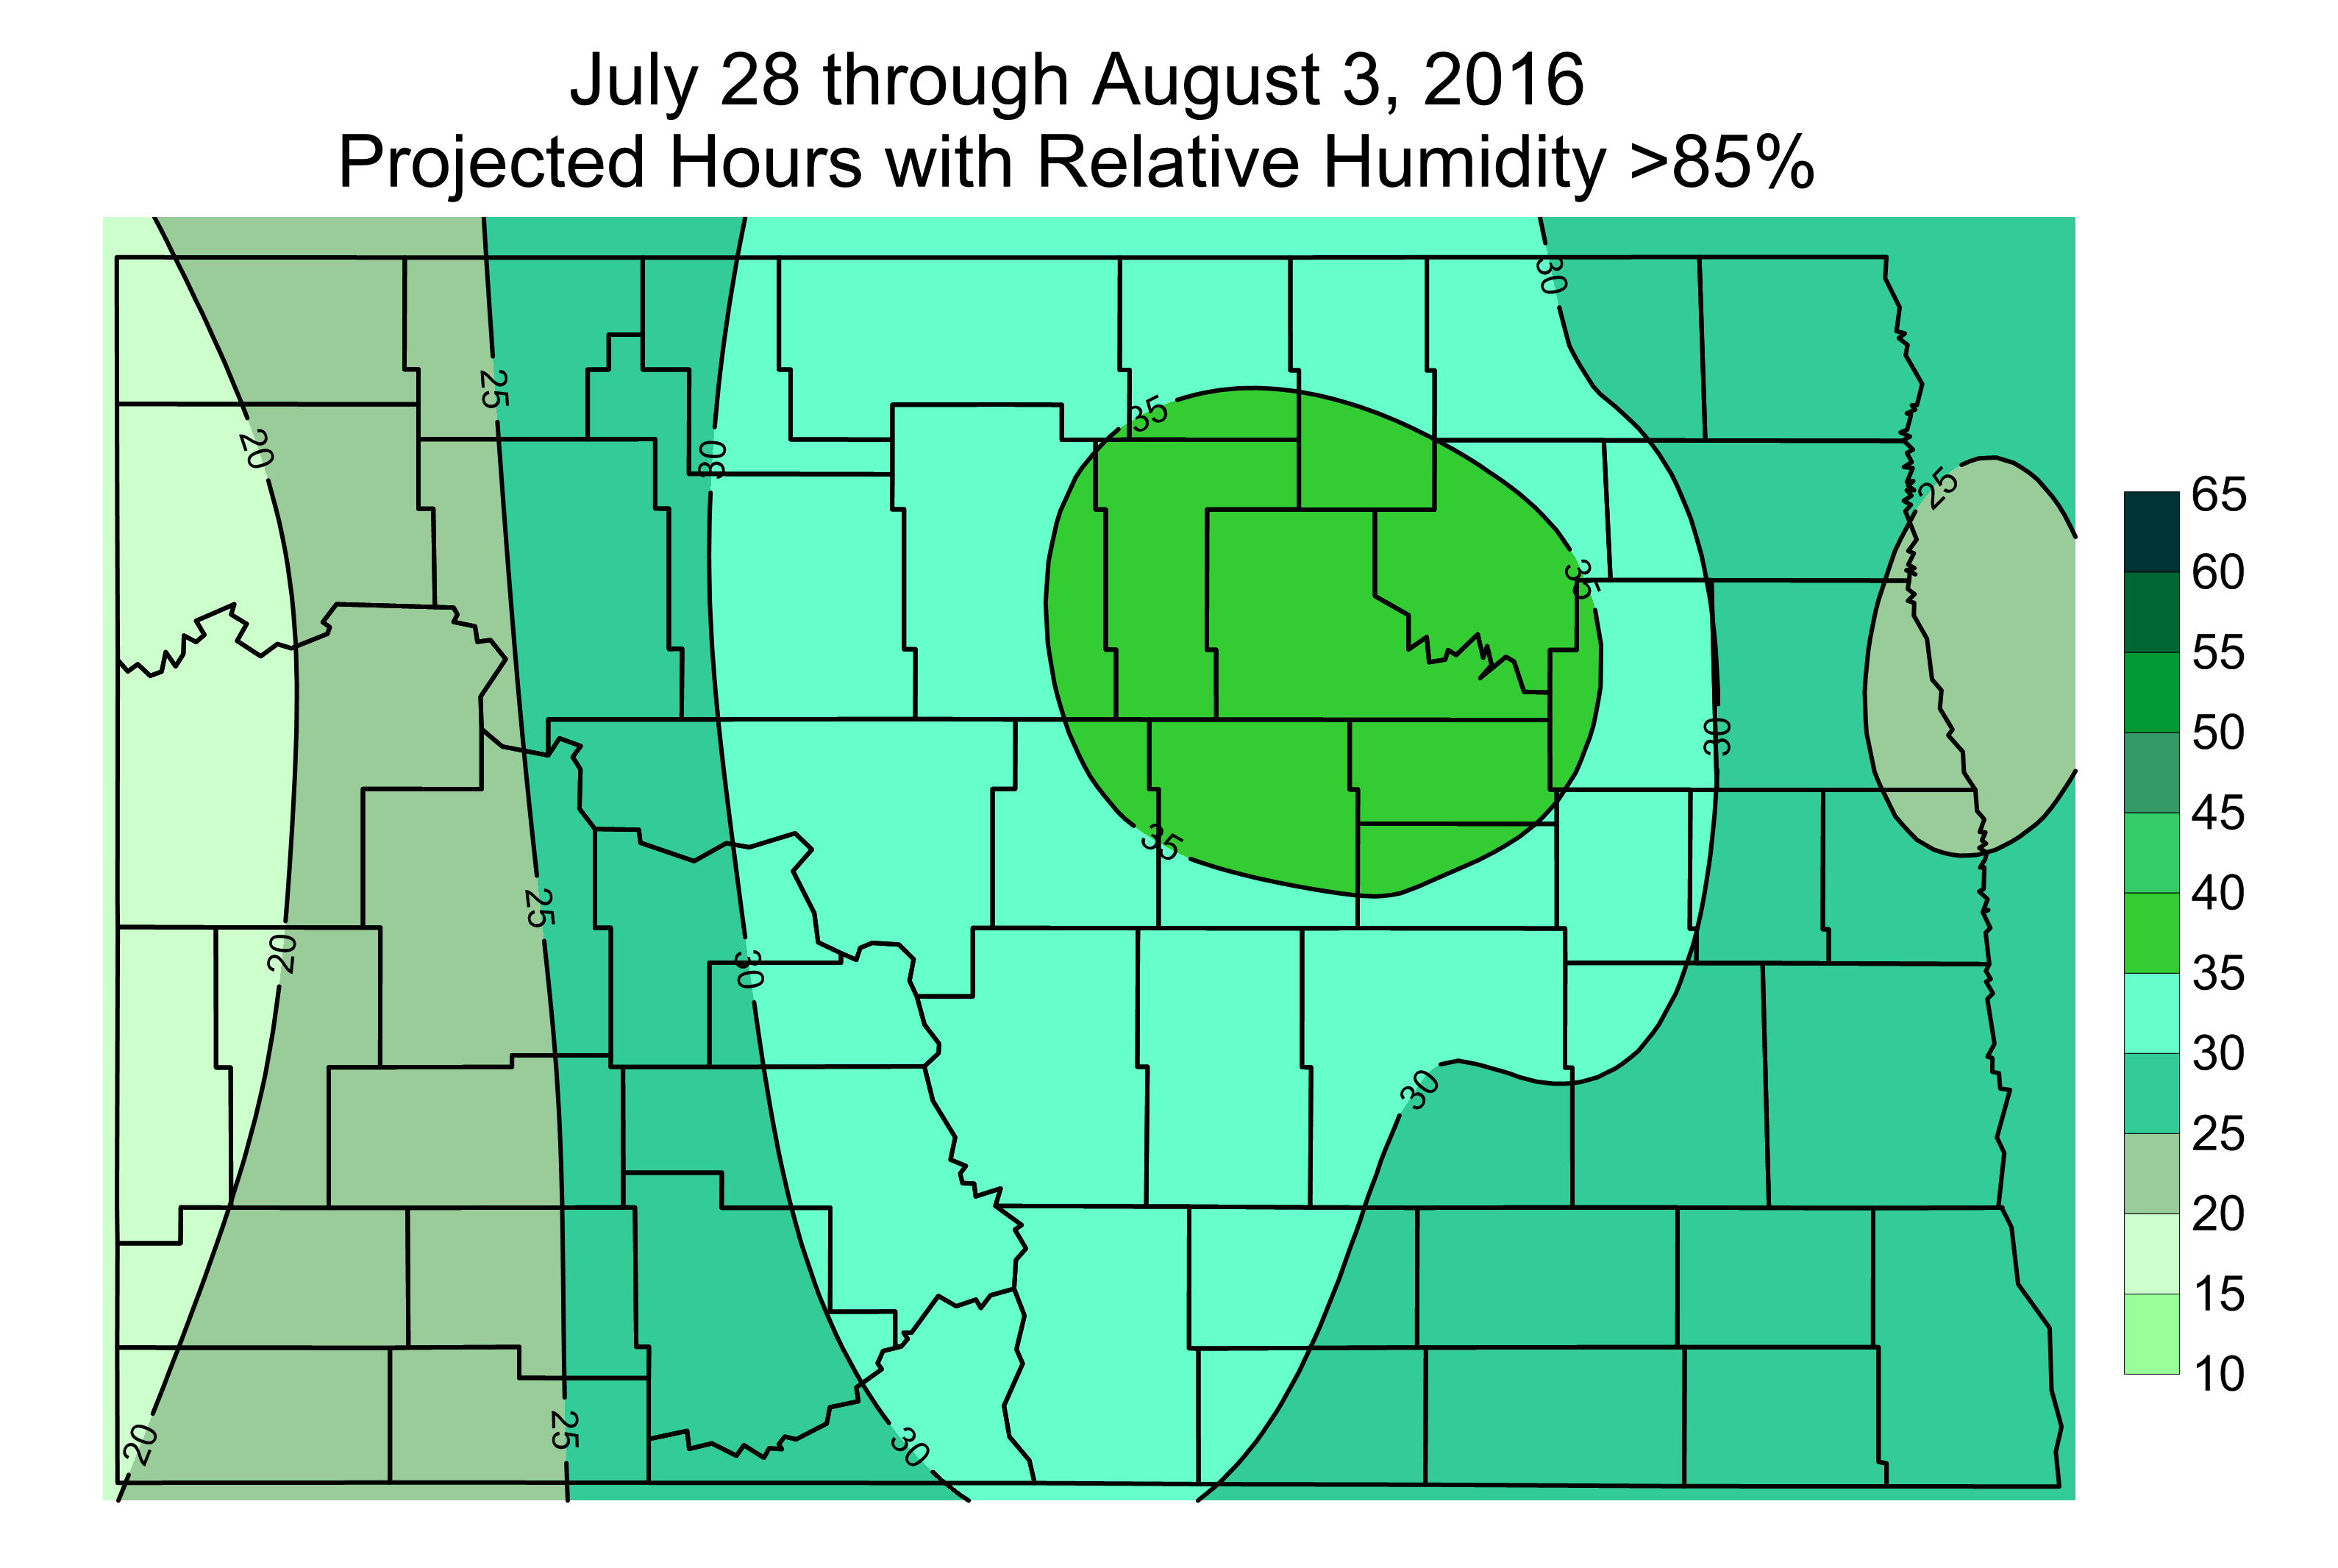 Projected Hours with Relative Humidity above 85% from July 28 through August 3, 2016